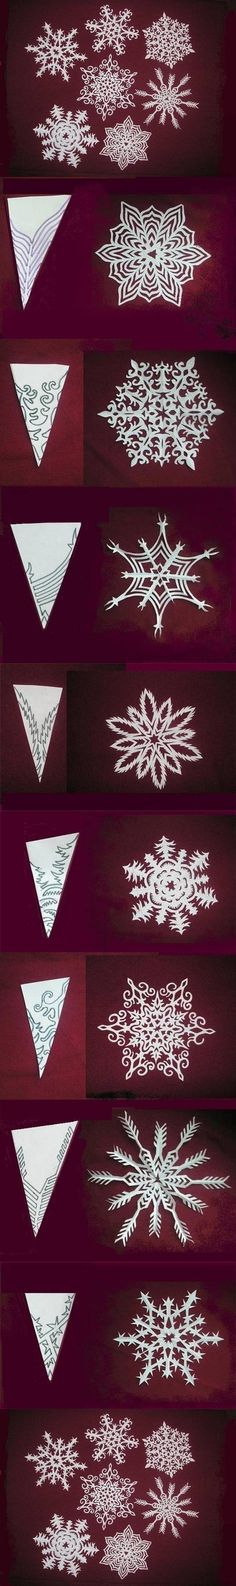 DIY Snowflakes Paper Pattern Tutorial via usefuldiy.com Cheap, inexpensive prop idea.